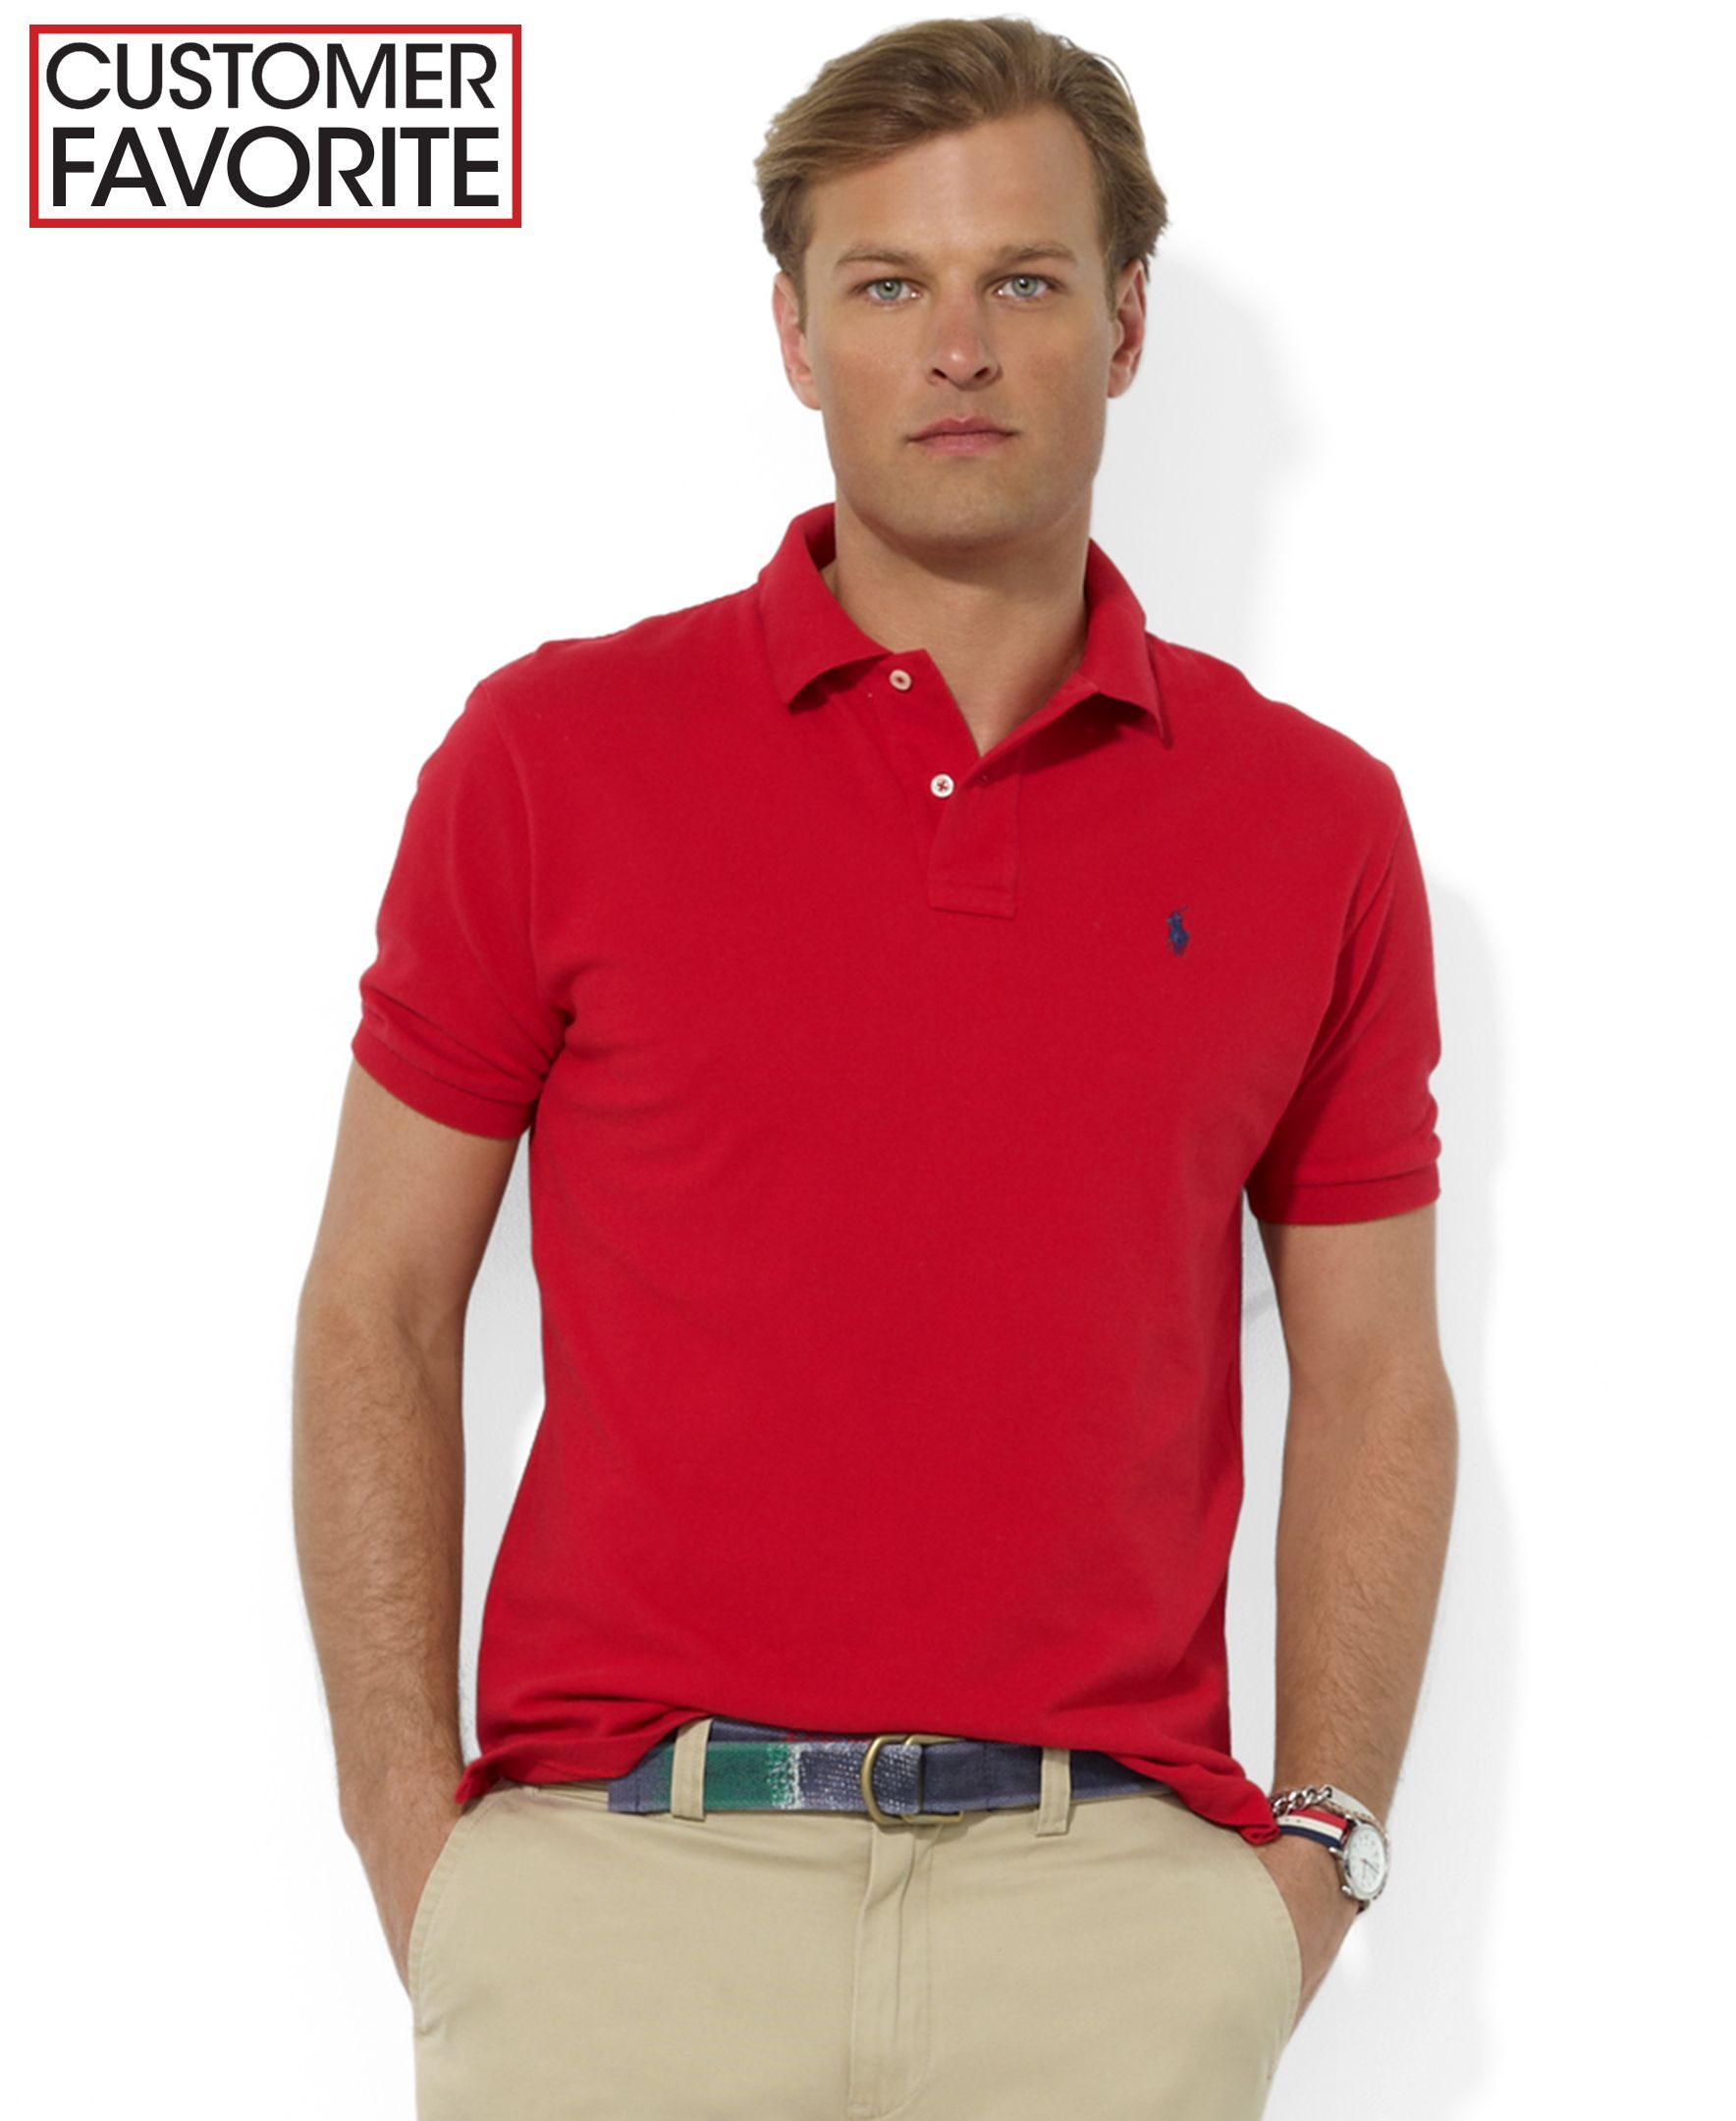 Dillards Mens Polo Shirts - Prism Contractors & Engineers